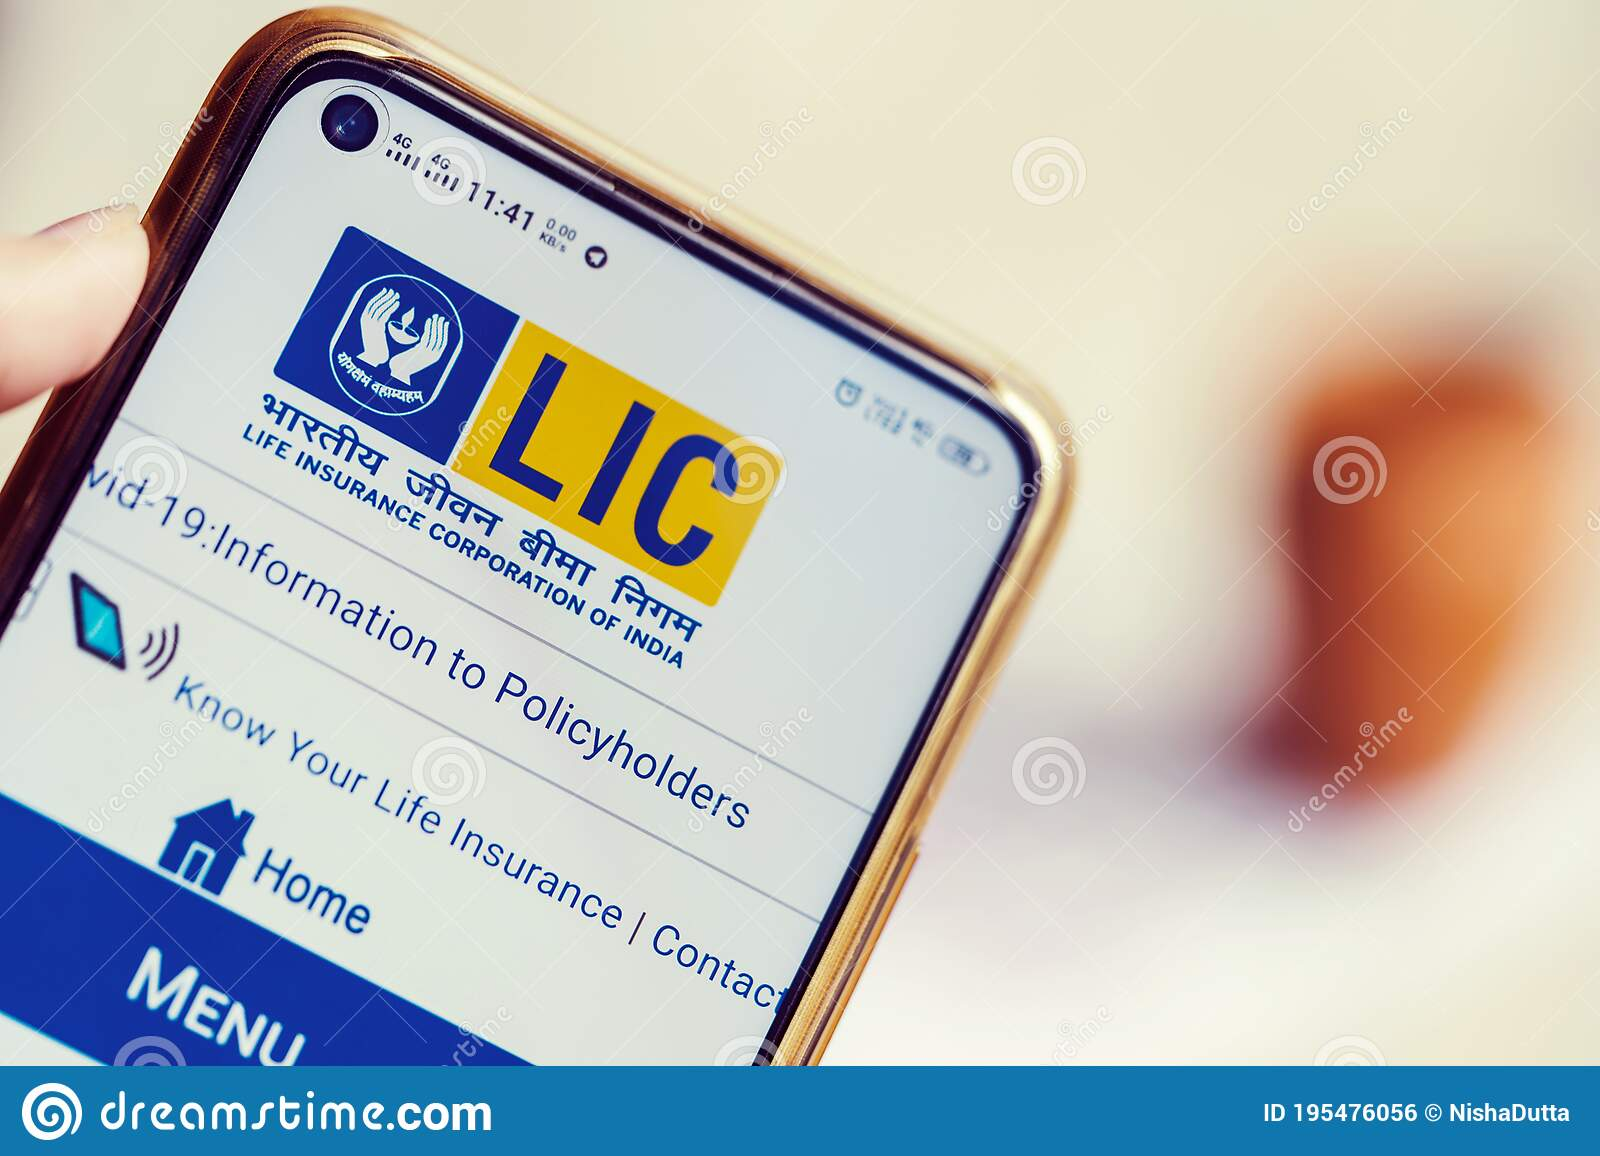 523 Lic Photos Free Royalty Free Stock Photos From Dreamstime